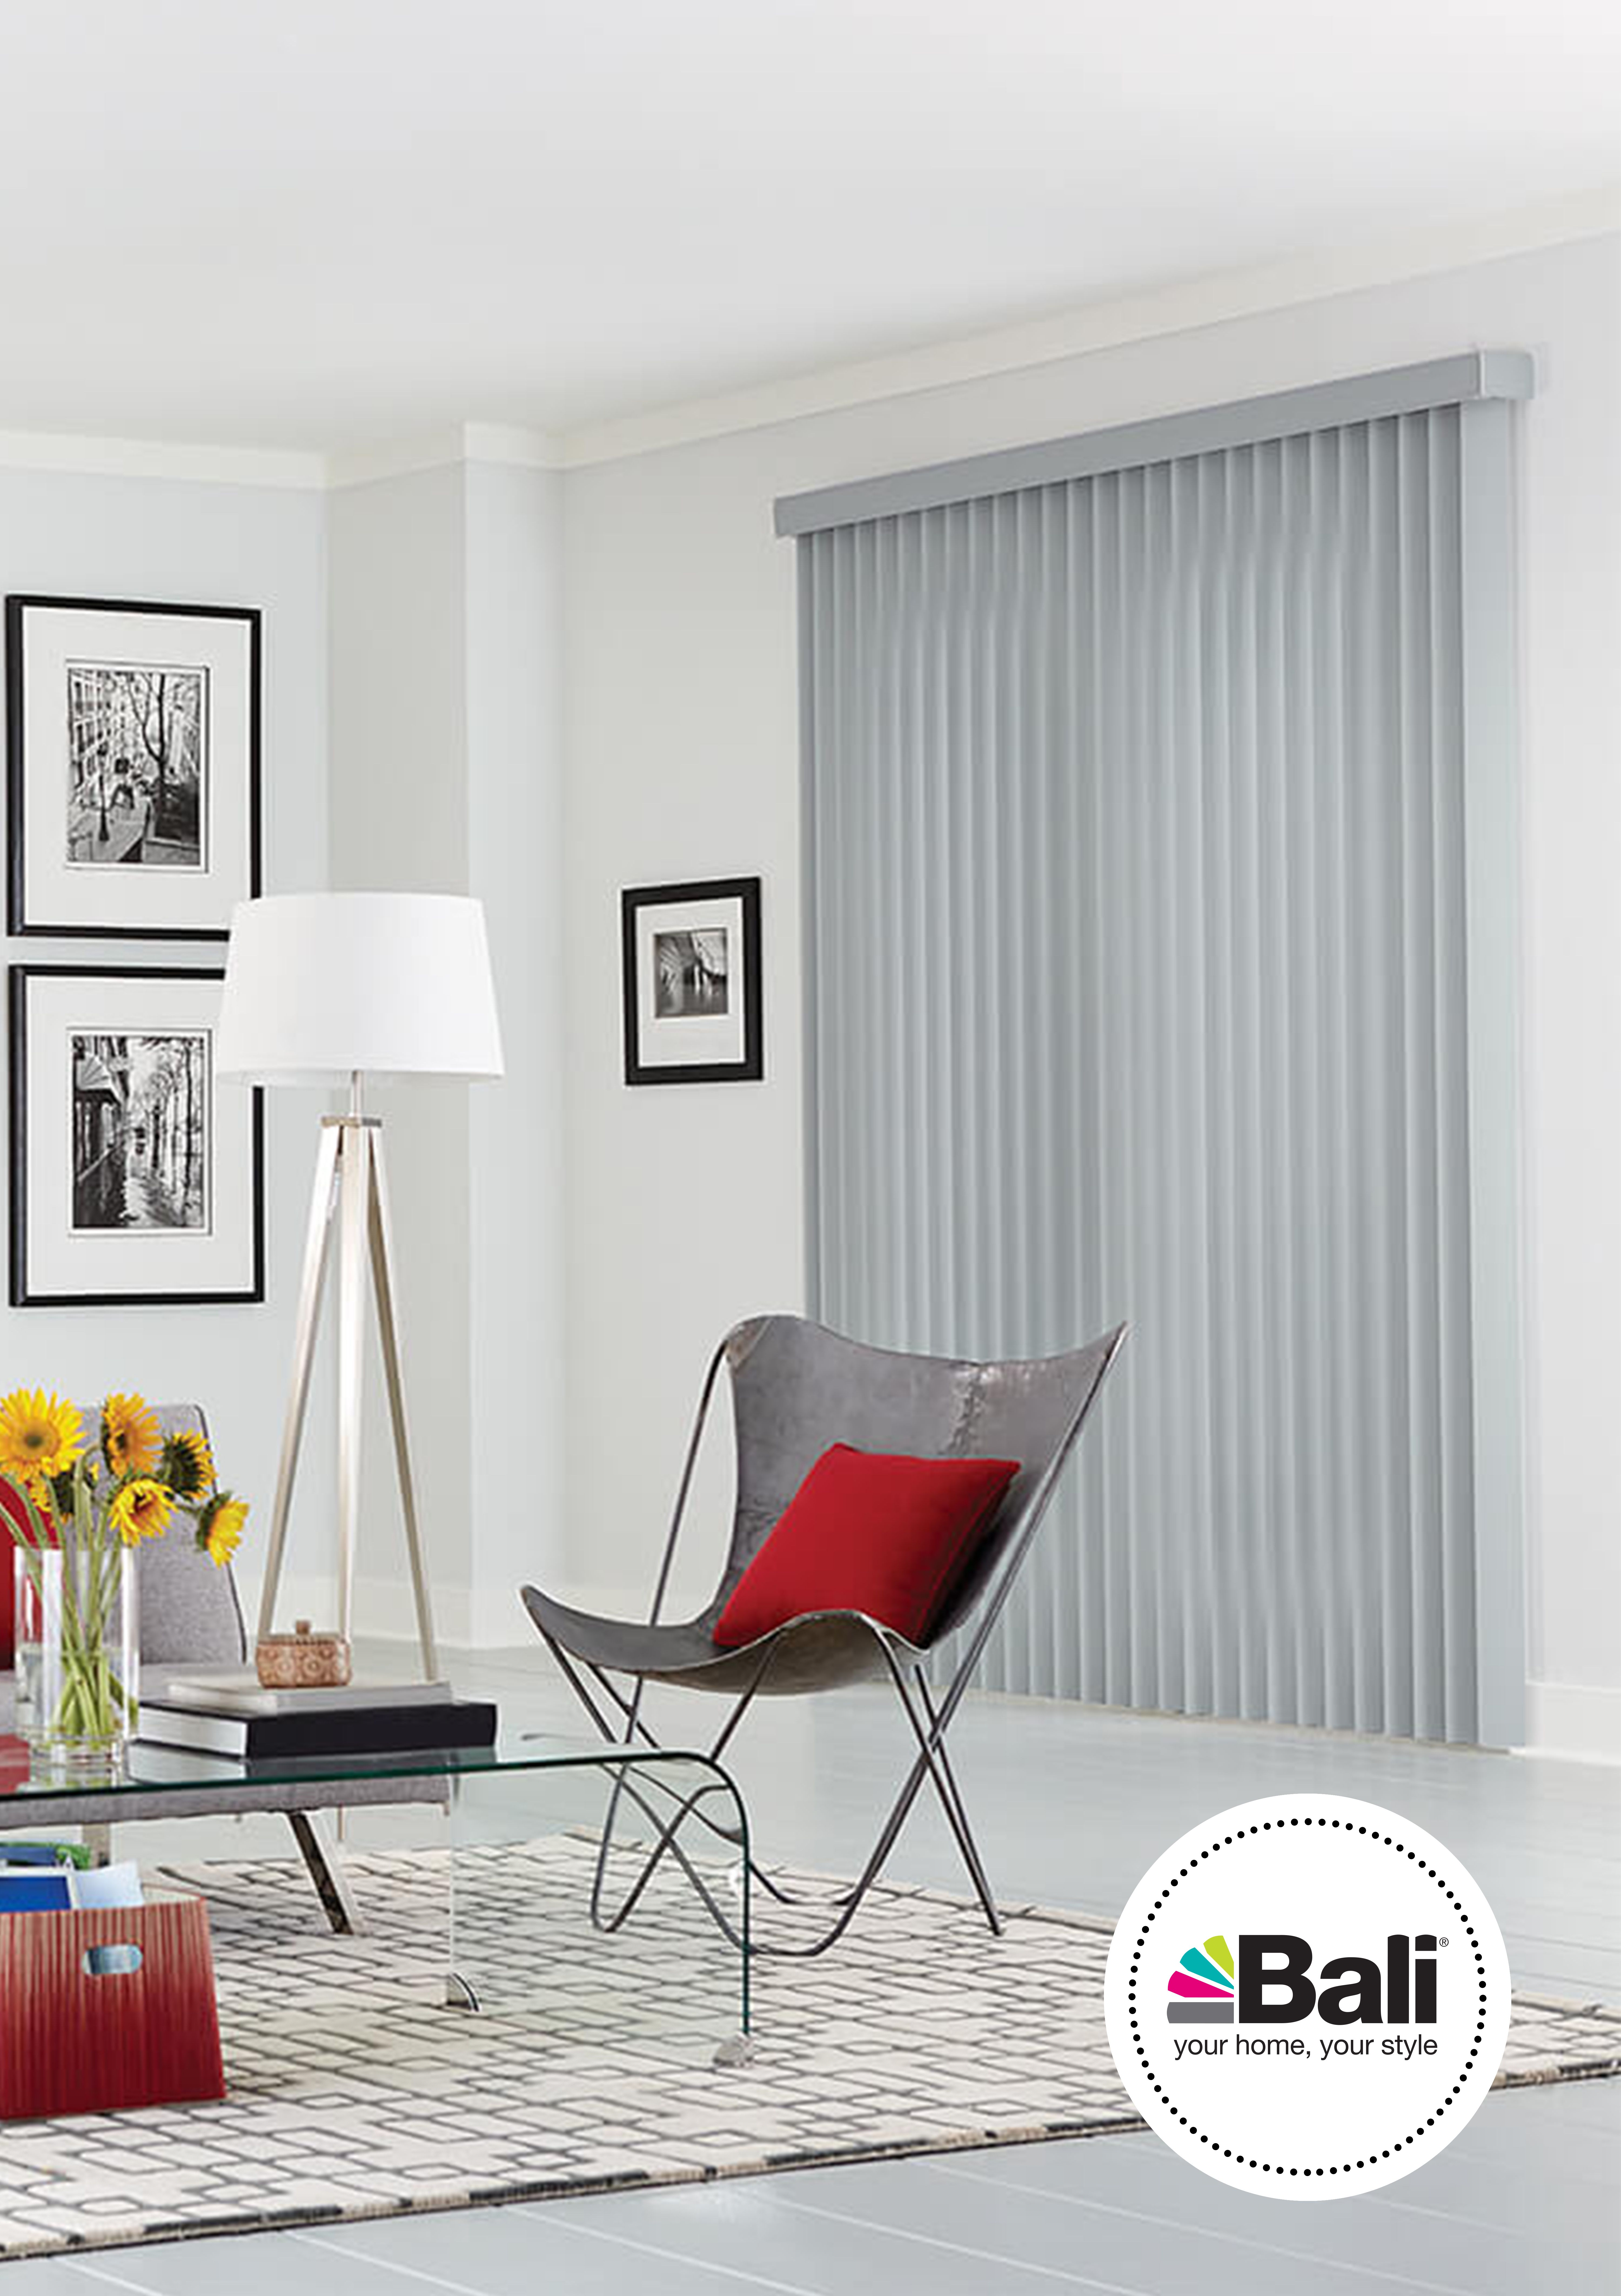 Long lasting easy gliding and boasting a variety of styles bali vertical blinds make the tried and true feel brand new our spin on this home décor